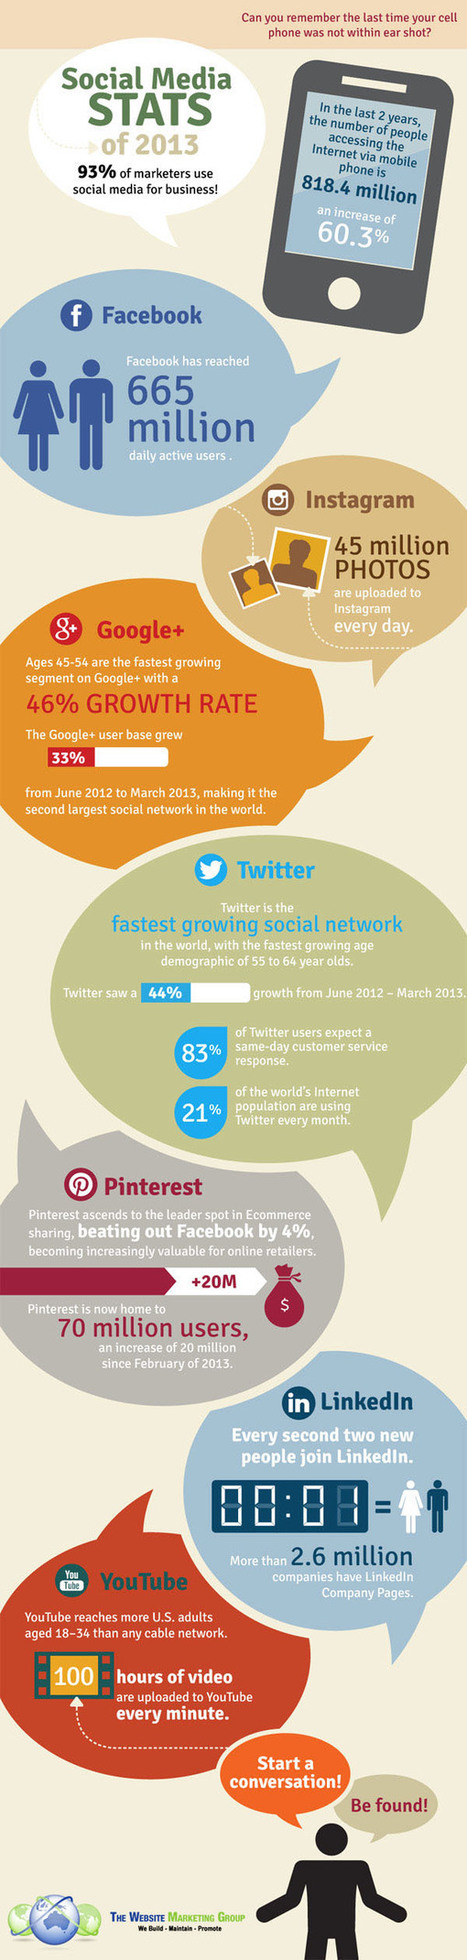 Social Media Infographic 2013 : Which platform is growing the fastest? | SocialMedia_me | Scoop.it